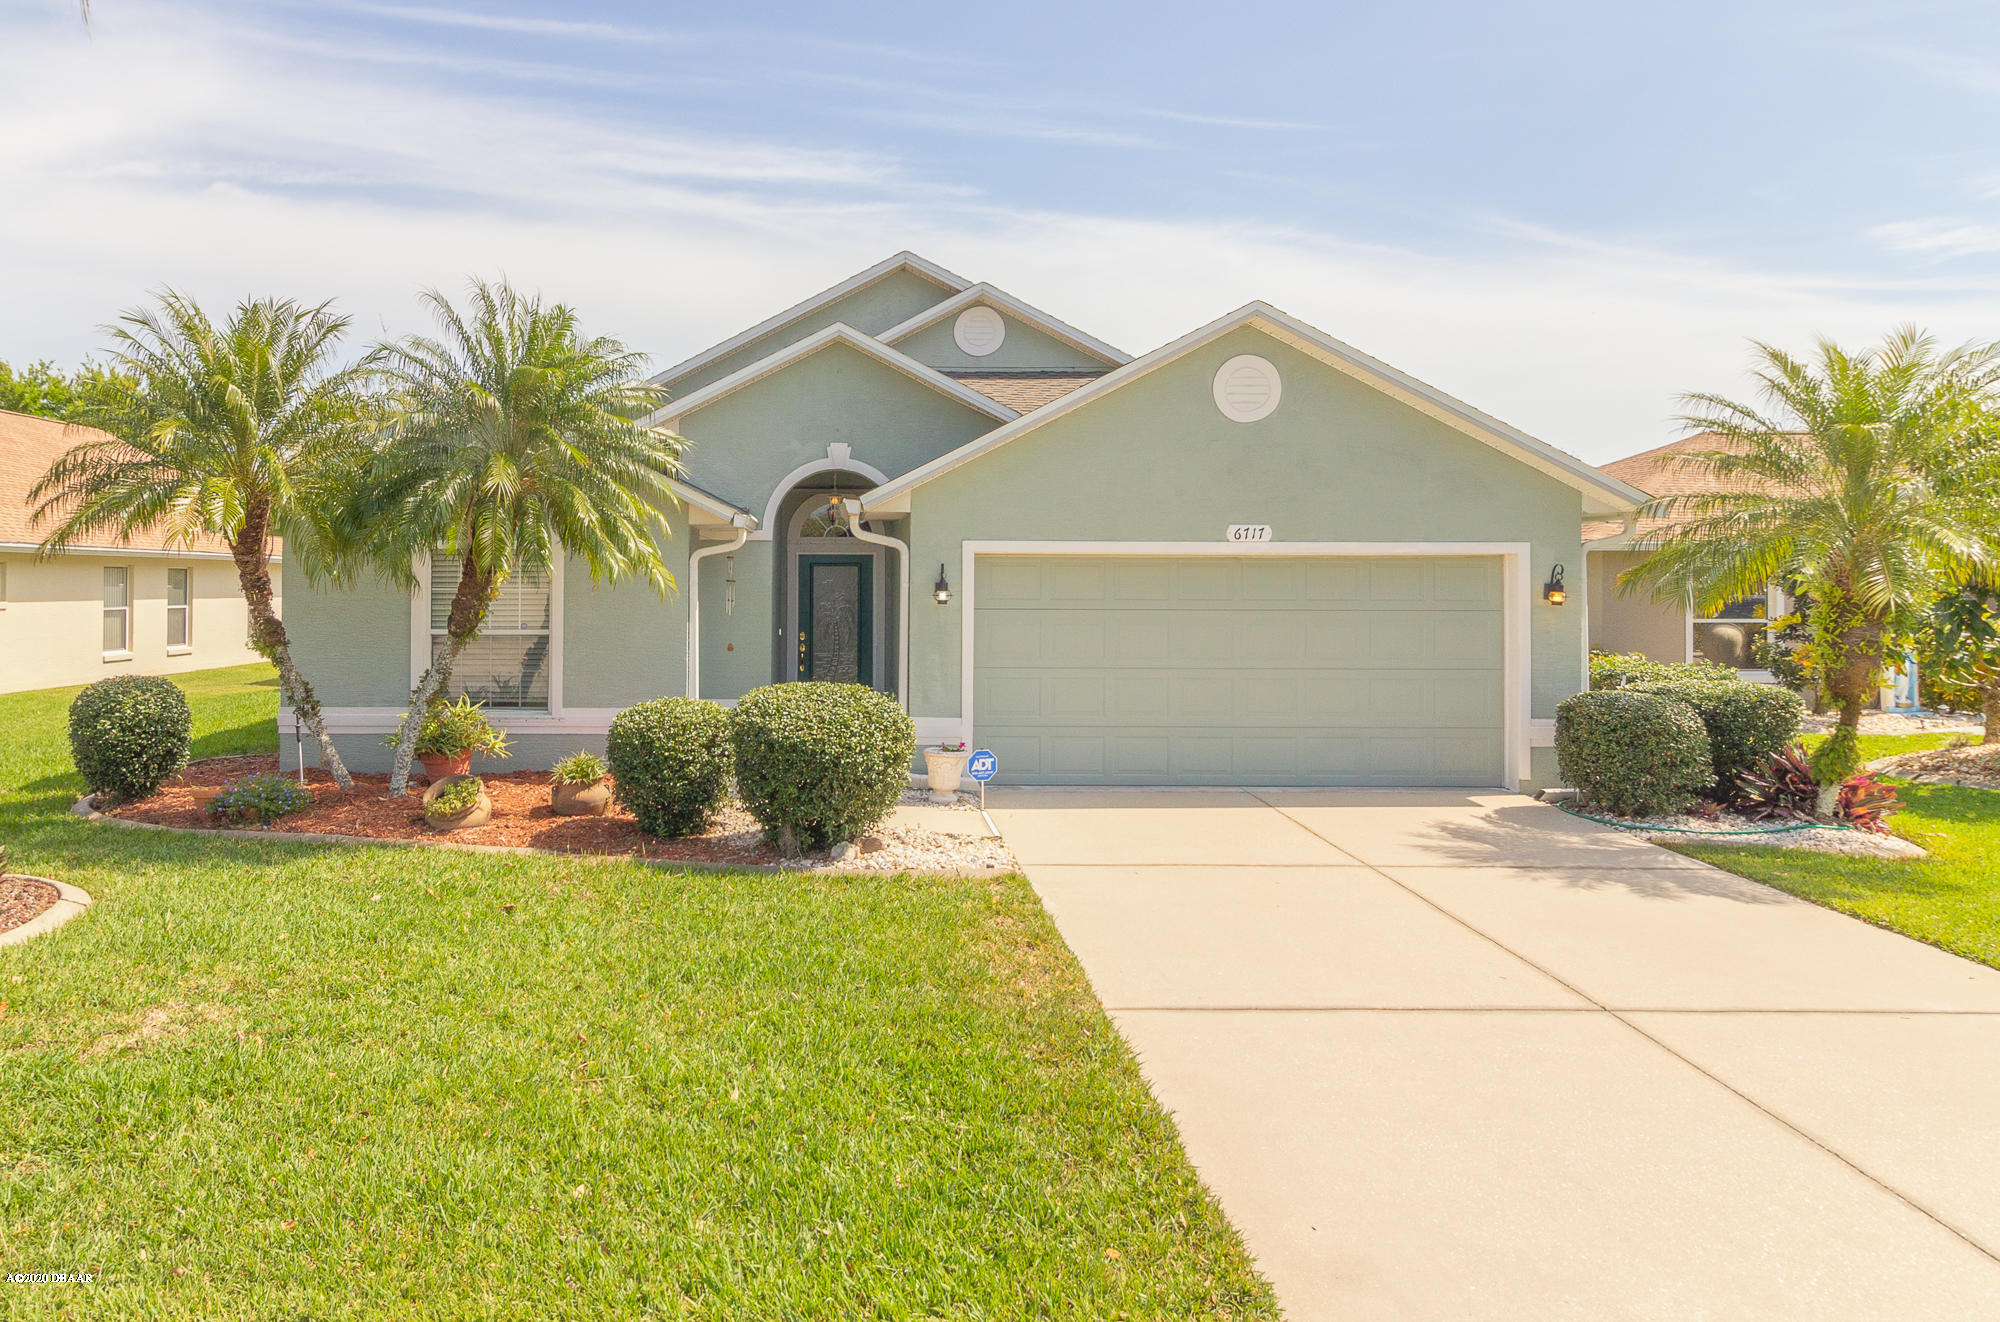 Photo of 6717 Calistoga Circle, Port Orange, FL 32128